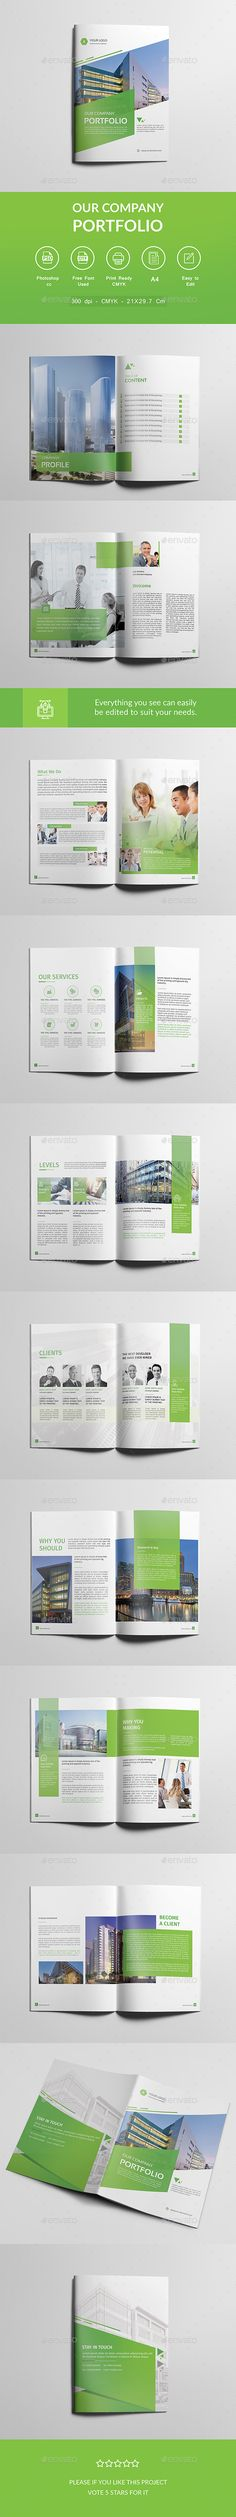 Magazine Print templates, Cleaning companies and Company profile - professional business profile template